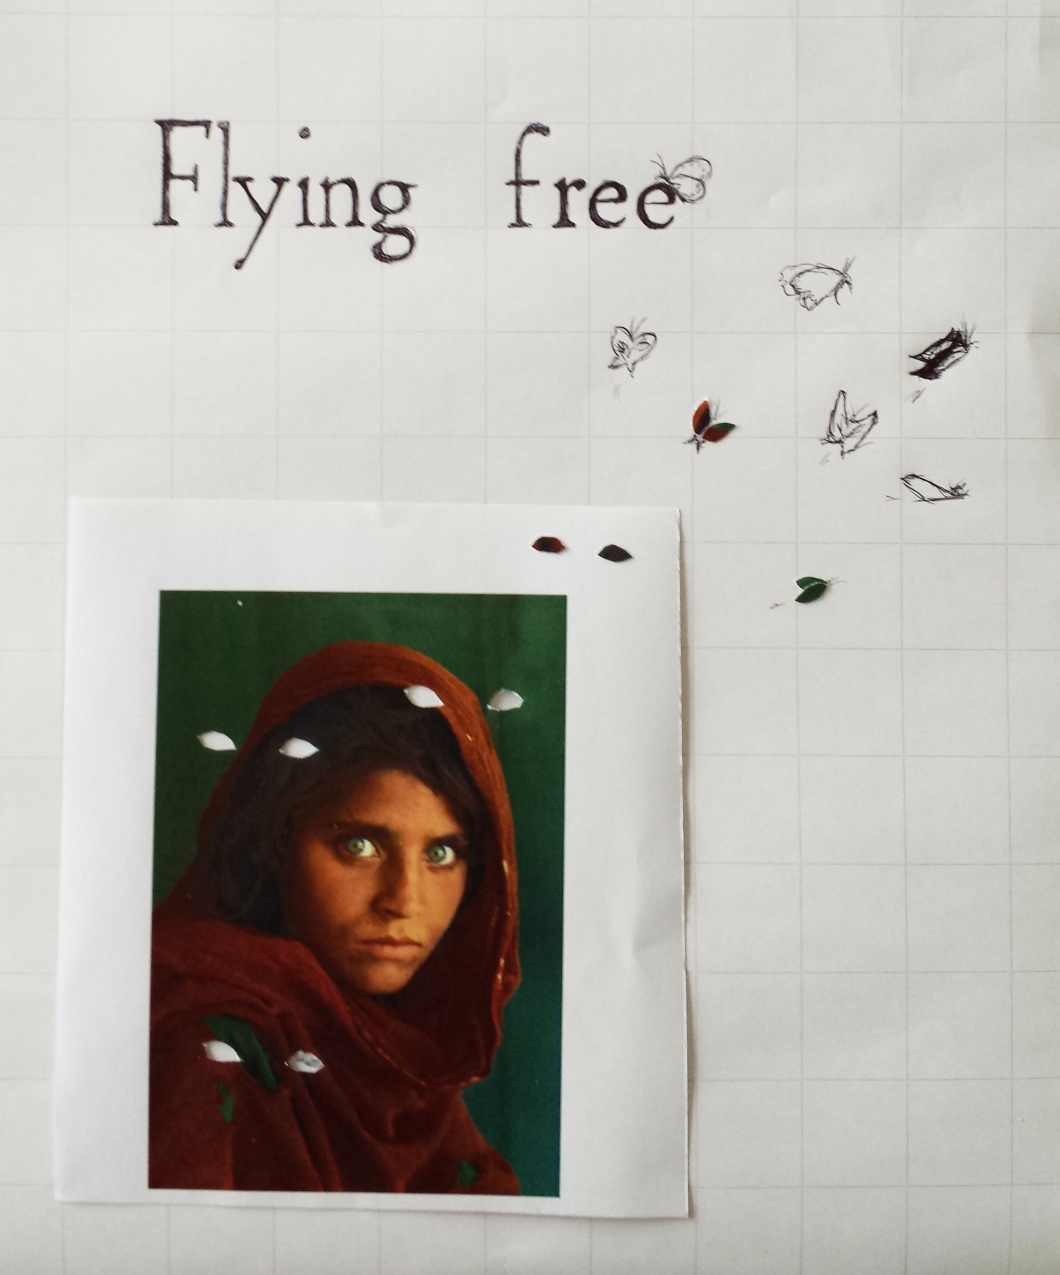 afghan girl flying free